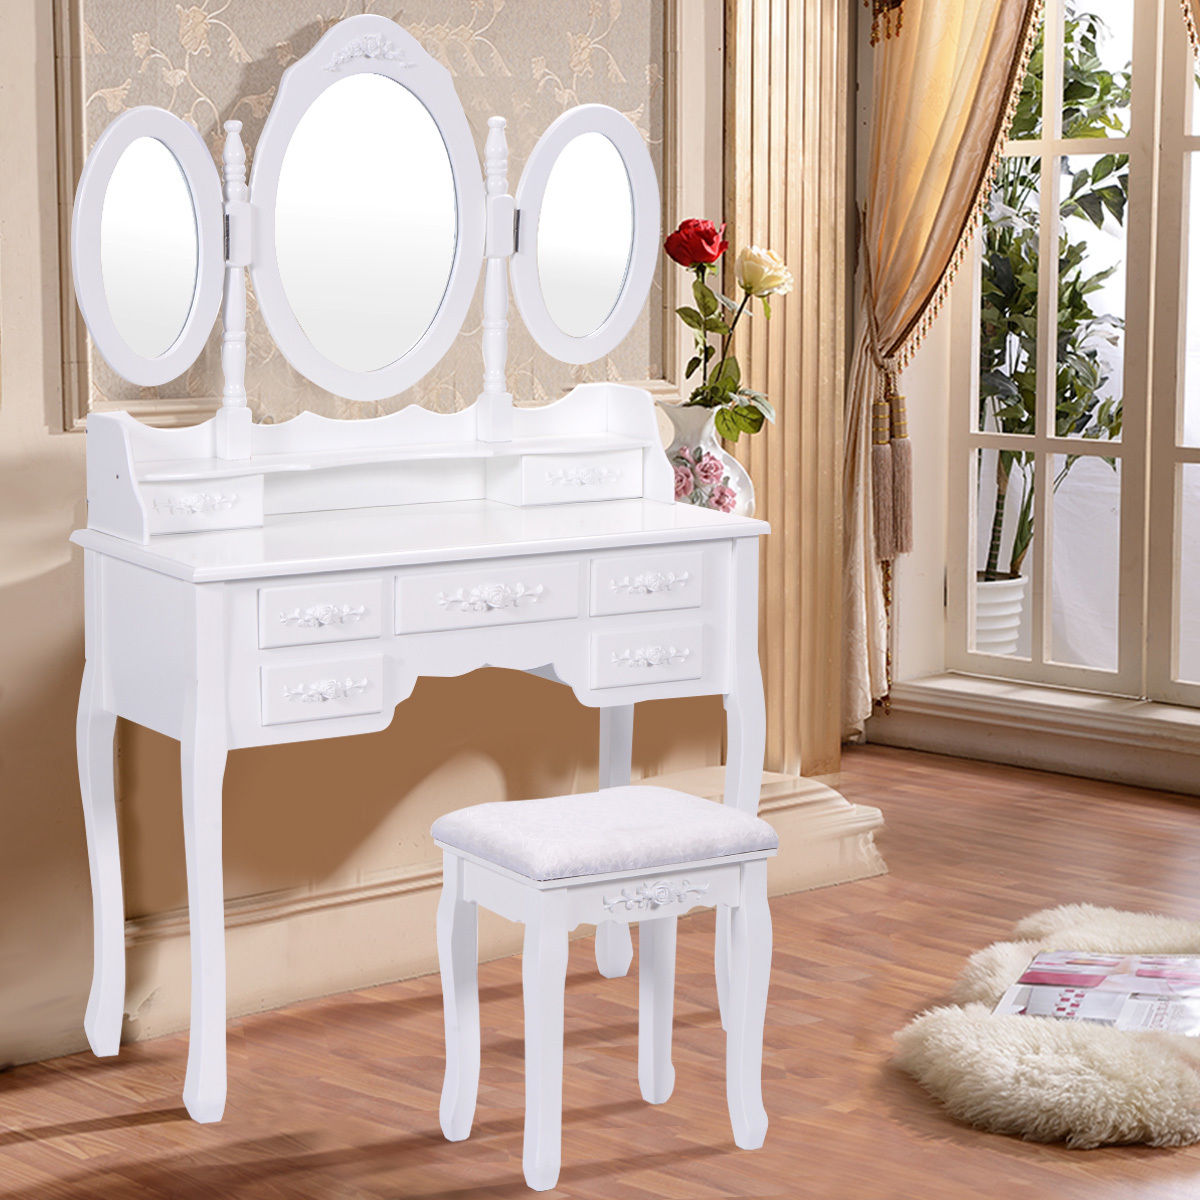 Costway White Tri Folding Oval Mirror Wood Vanity Makeup Table Set with Stool &7 Drawers by Costway